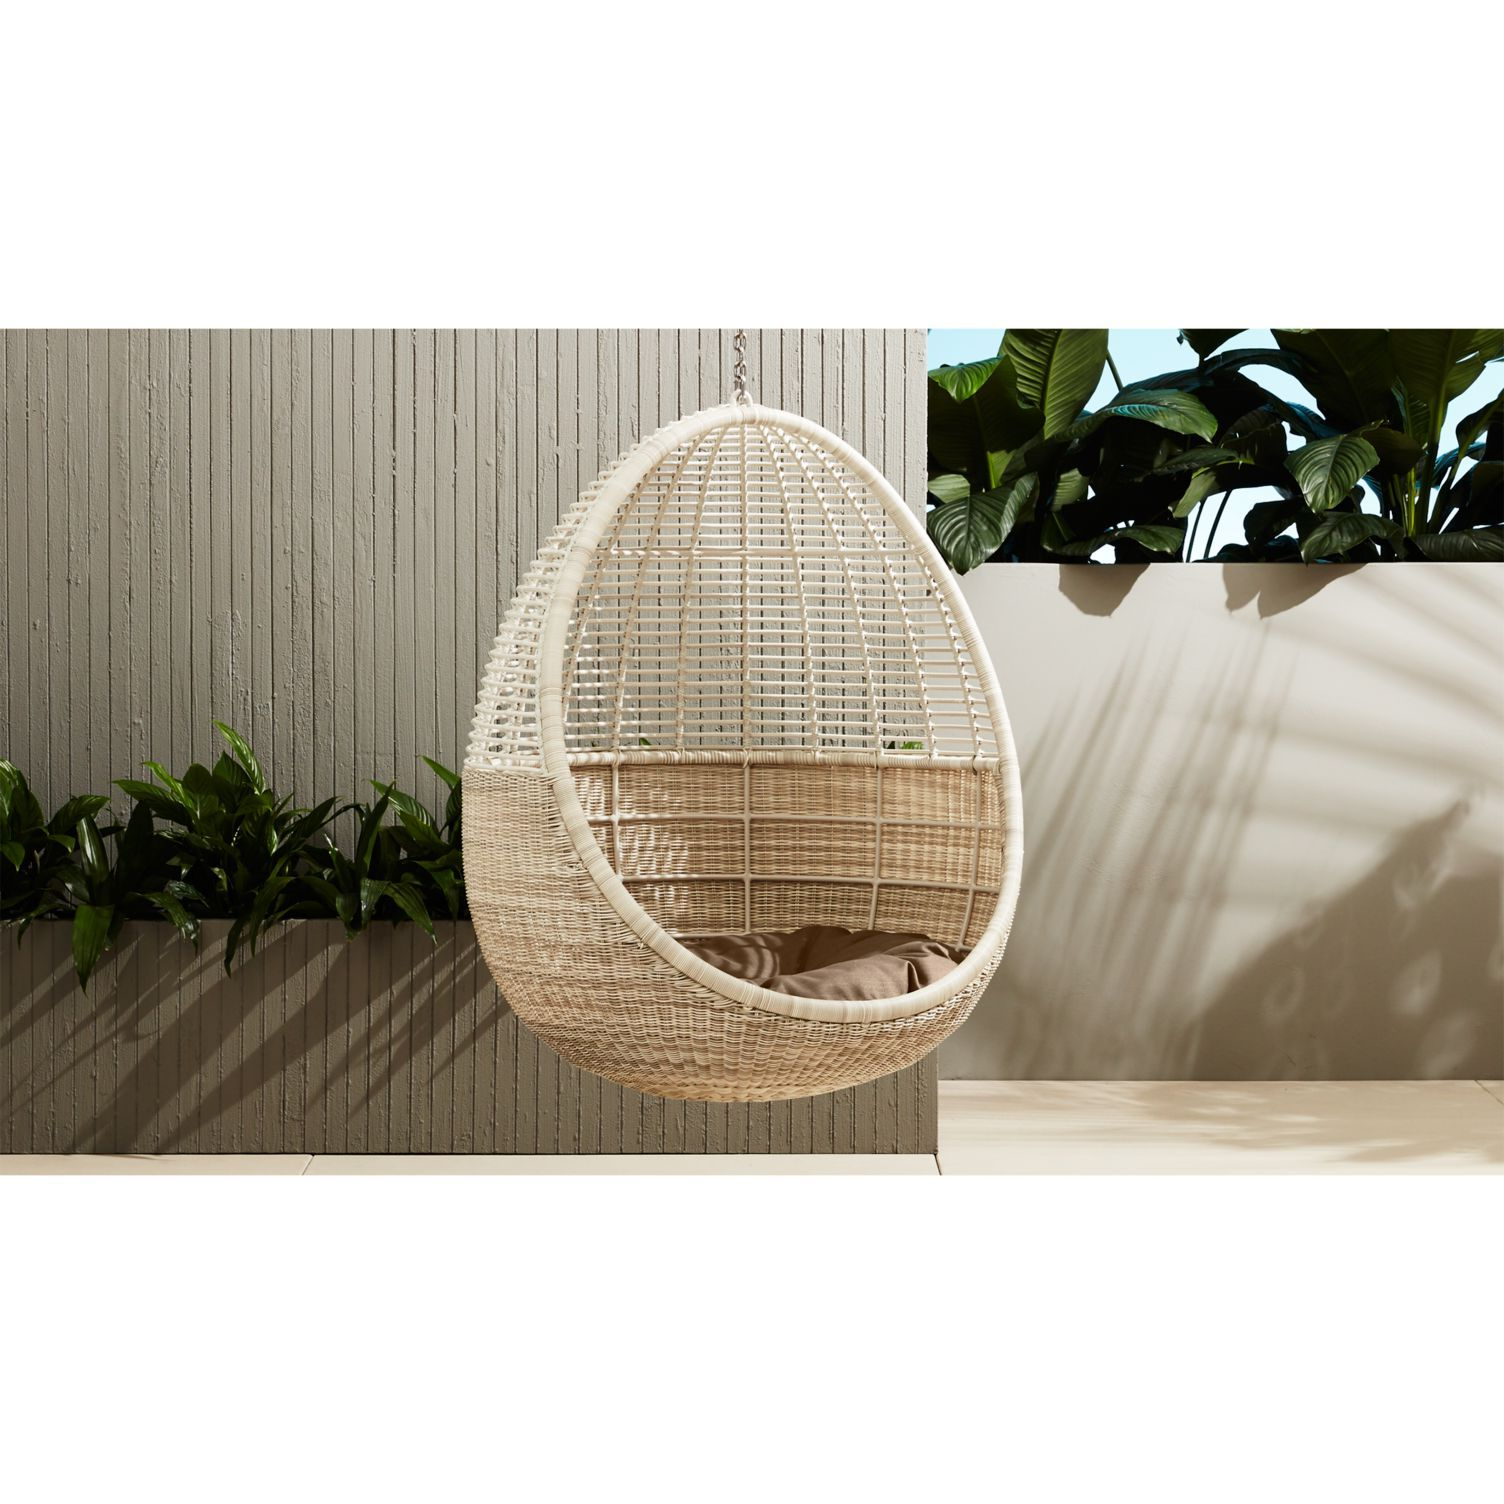 Pin On Rattan Delight Intended For Well Known Renay Papasan Chairs (View 18 of 20)